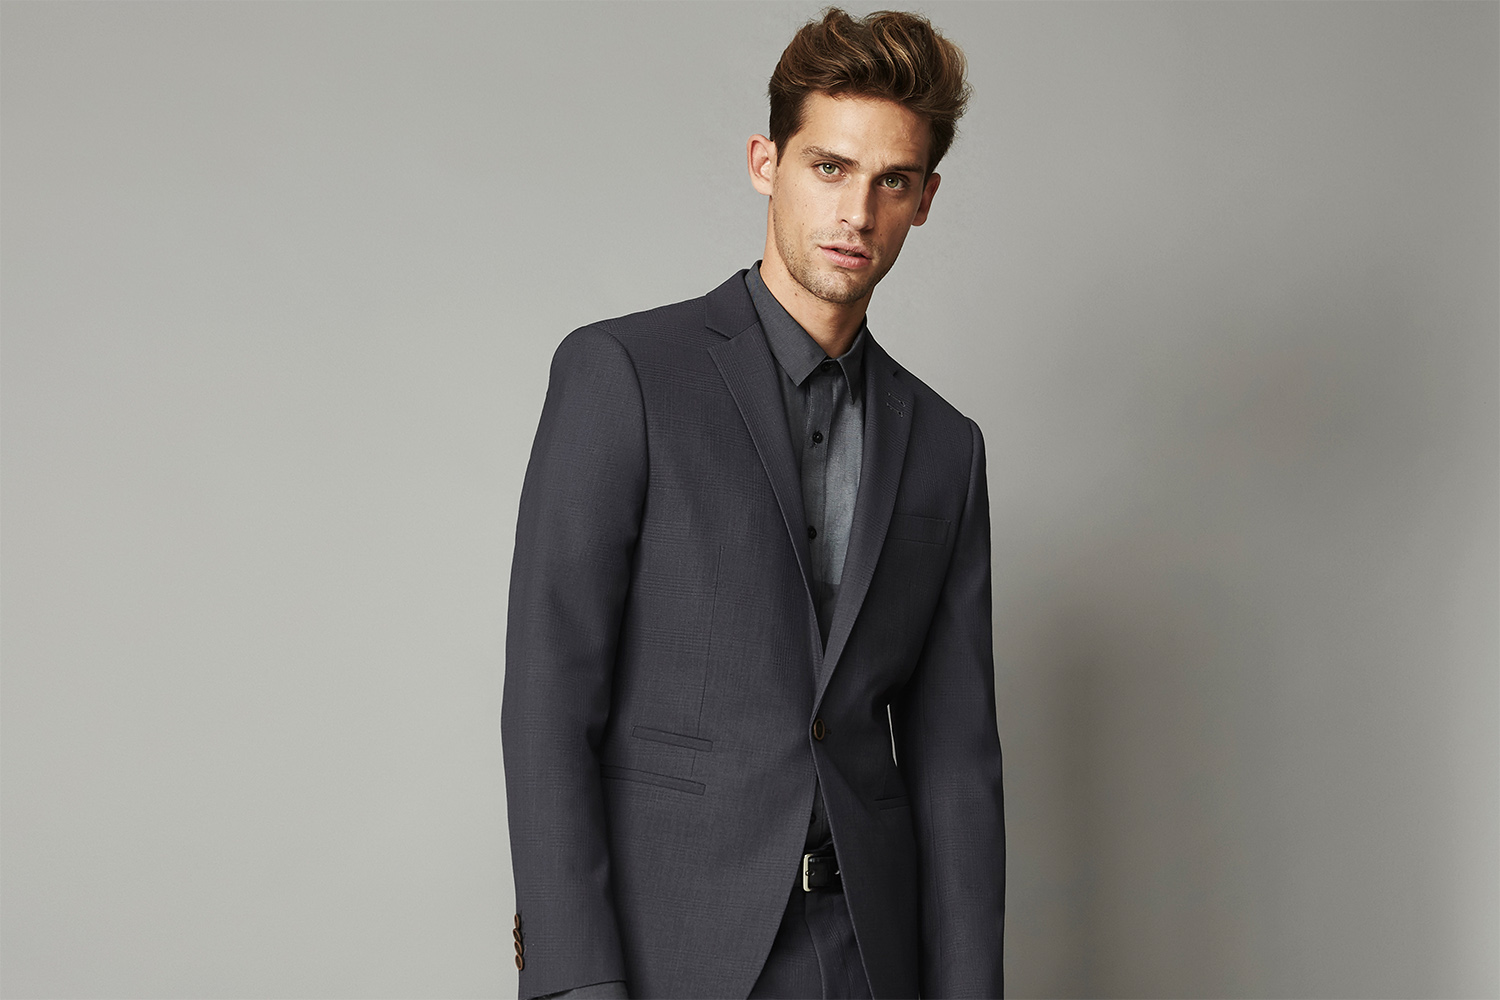 shoreditch-charcoal-suit-pant-grey-notched-lapel-french-concession.jpg